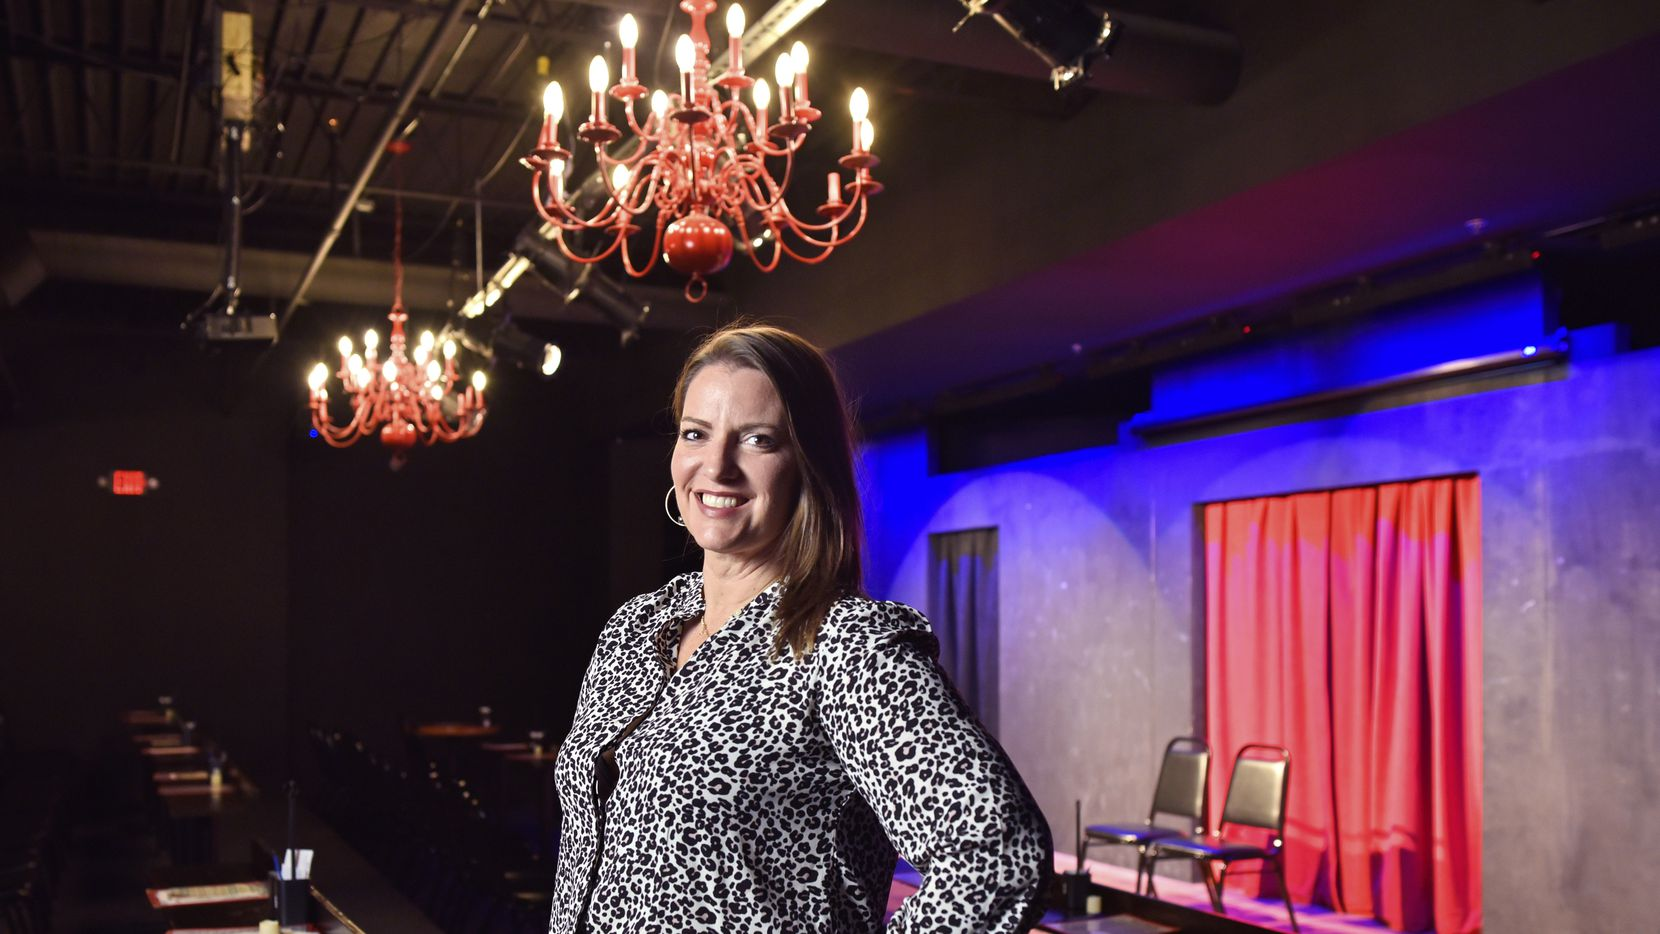 Amanda Austin, owner and founder of the Dallas Comedy House, inside the main performance hall at the DCH on Nov. 06, 2019 in Dallas.